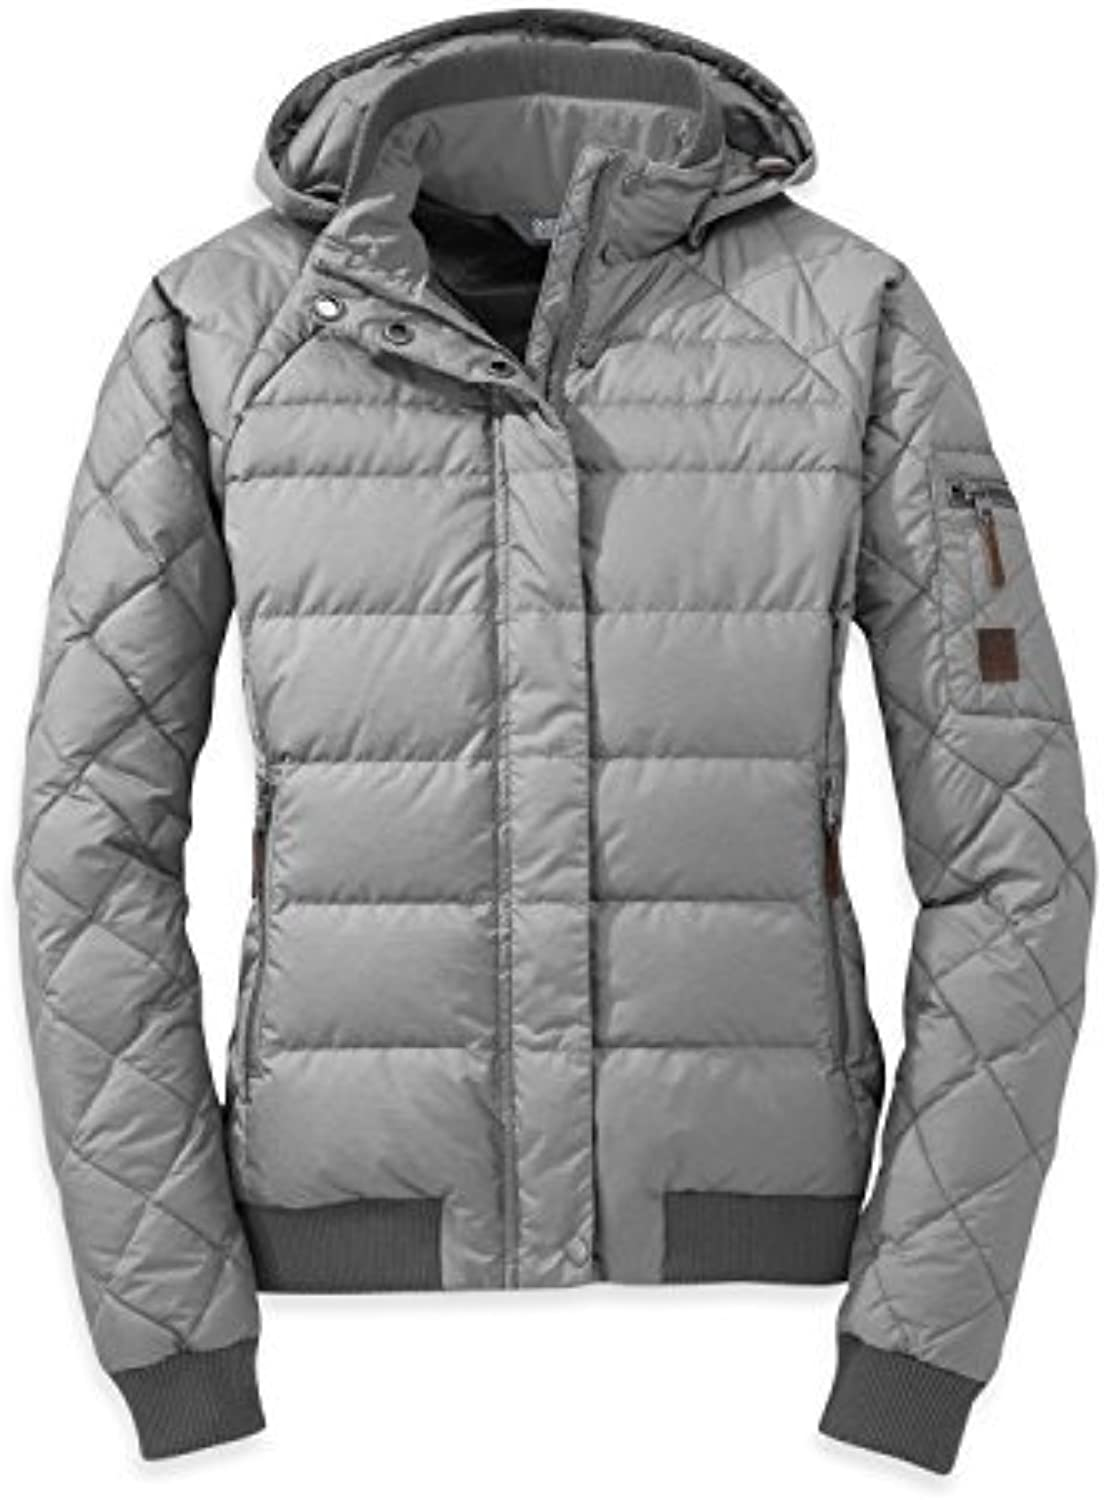 Outdoor Research Women's Placid Down Jacket, Alloy, Small by Outdoor Research